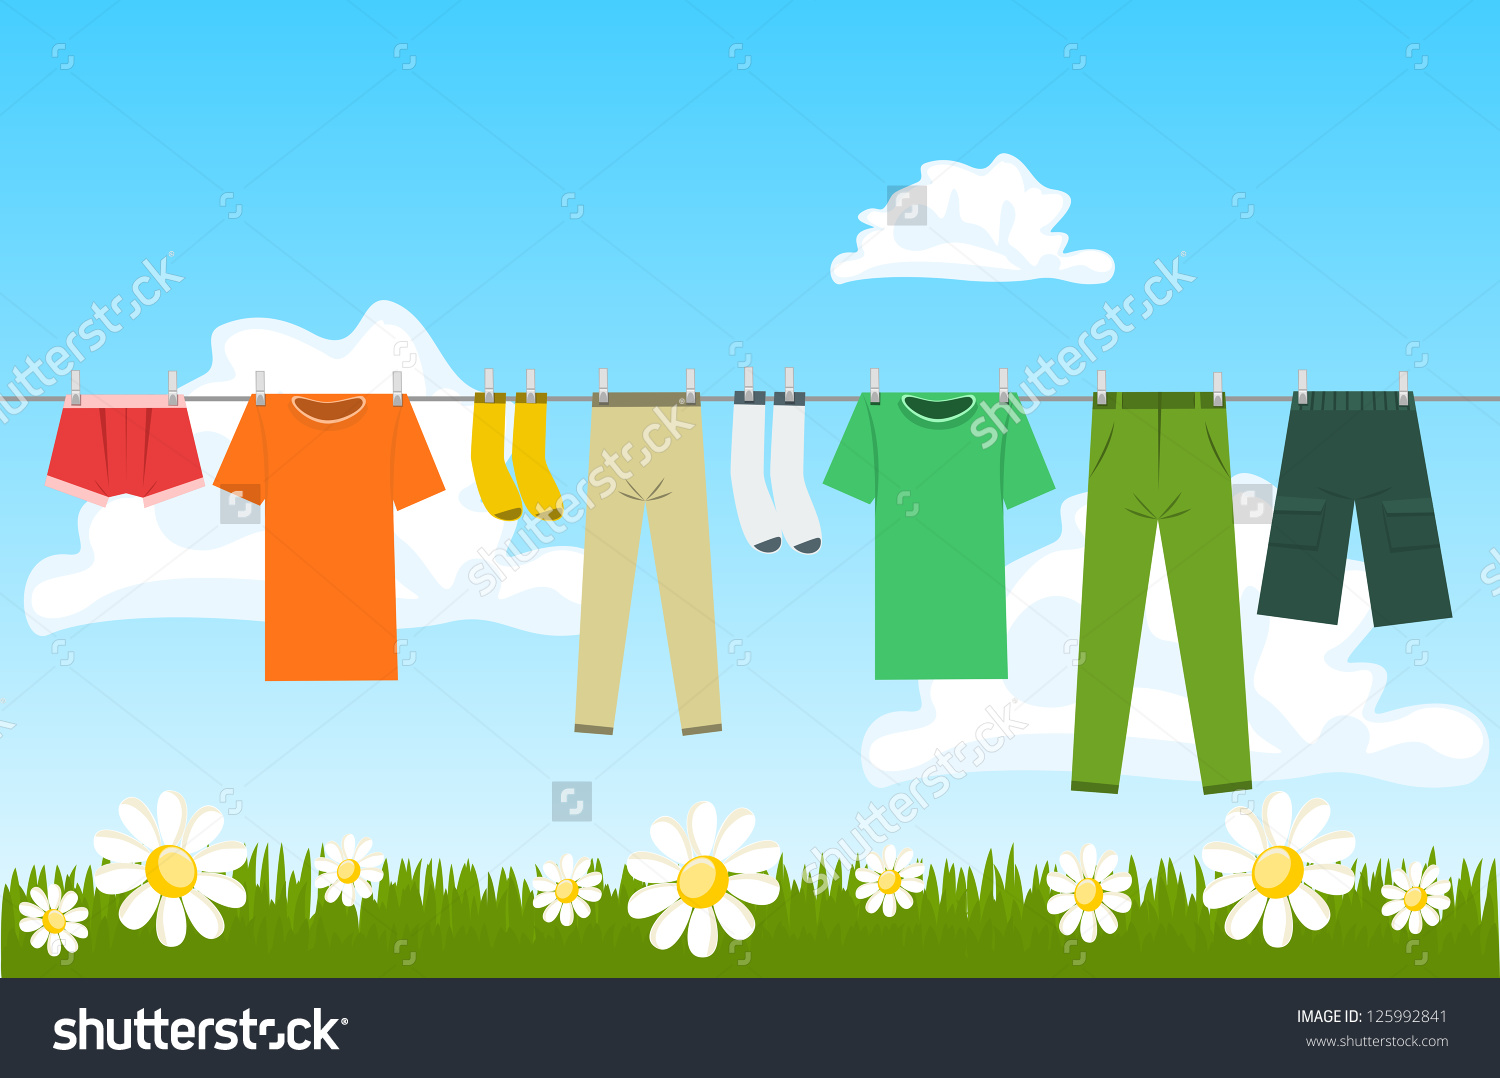 Illustration Clothes Drying Outdoor Stock Vector 125992841.